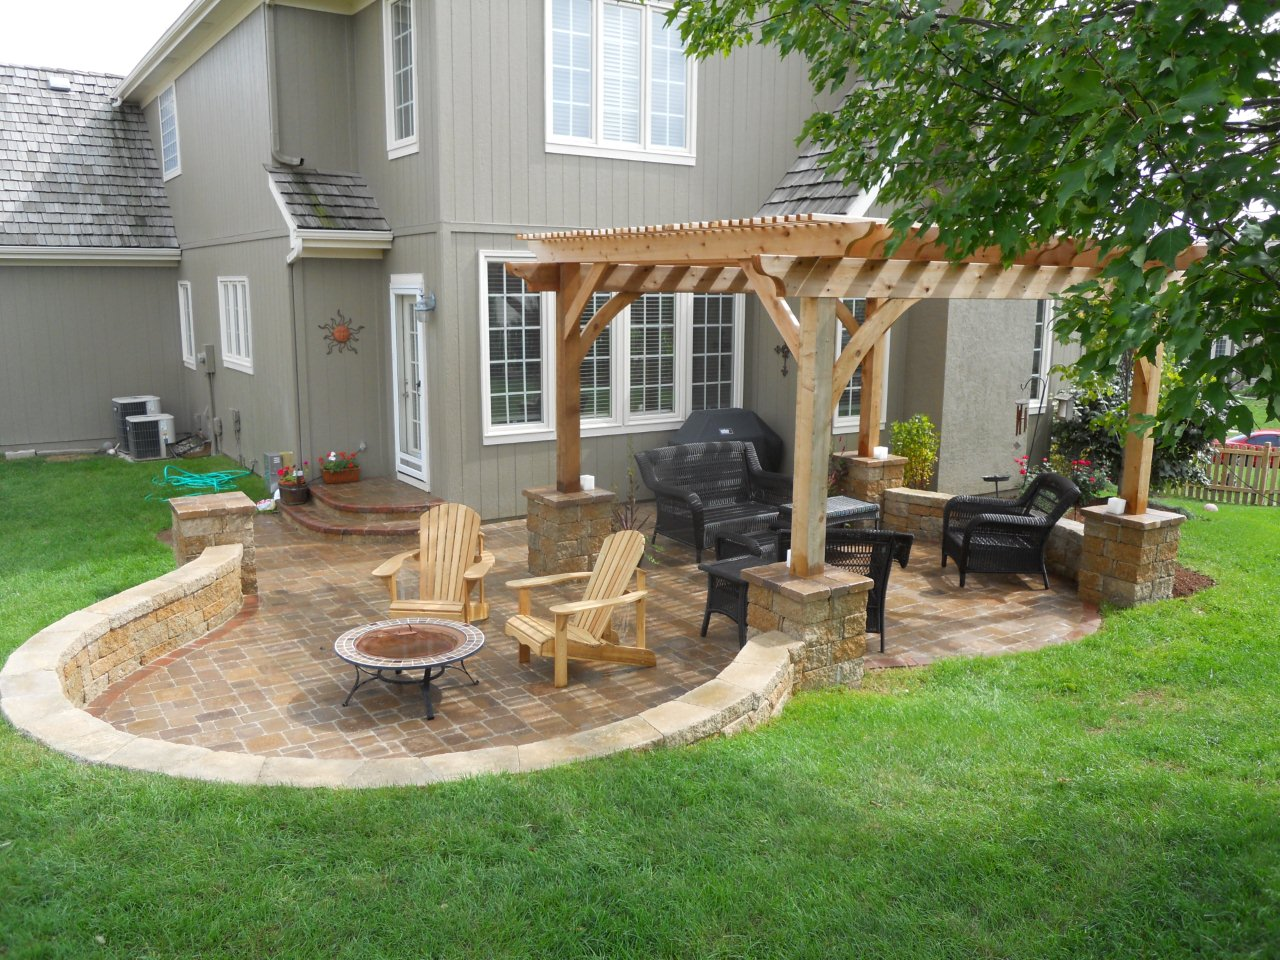 Backyard Patio and Landscaping Ideas